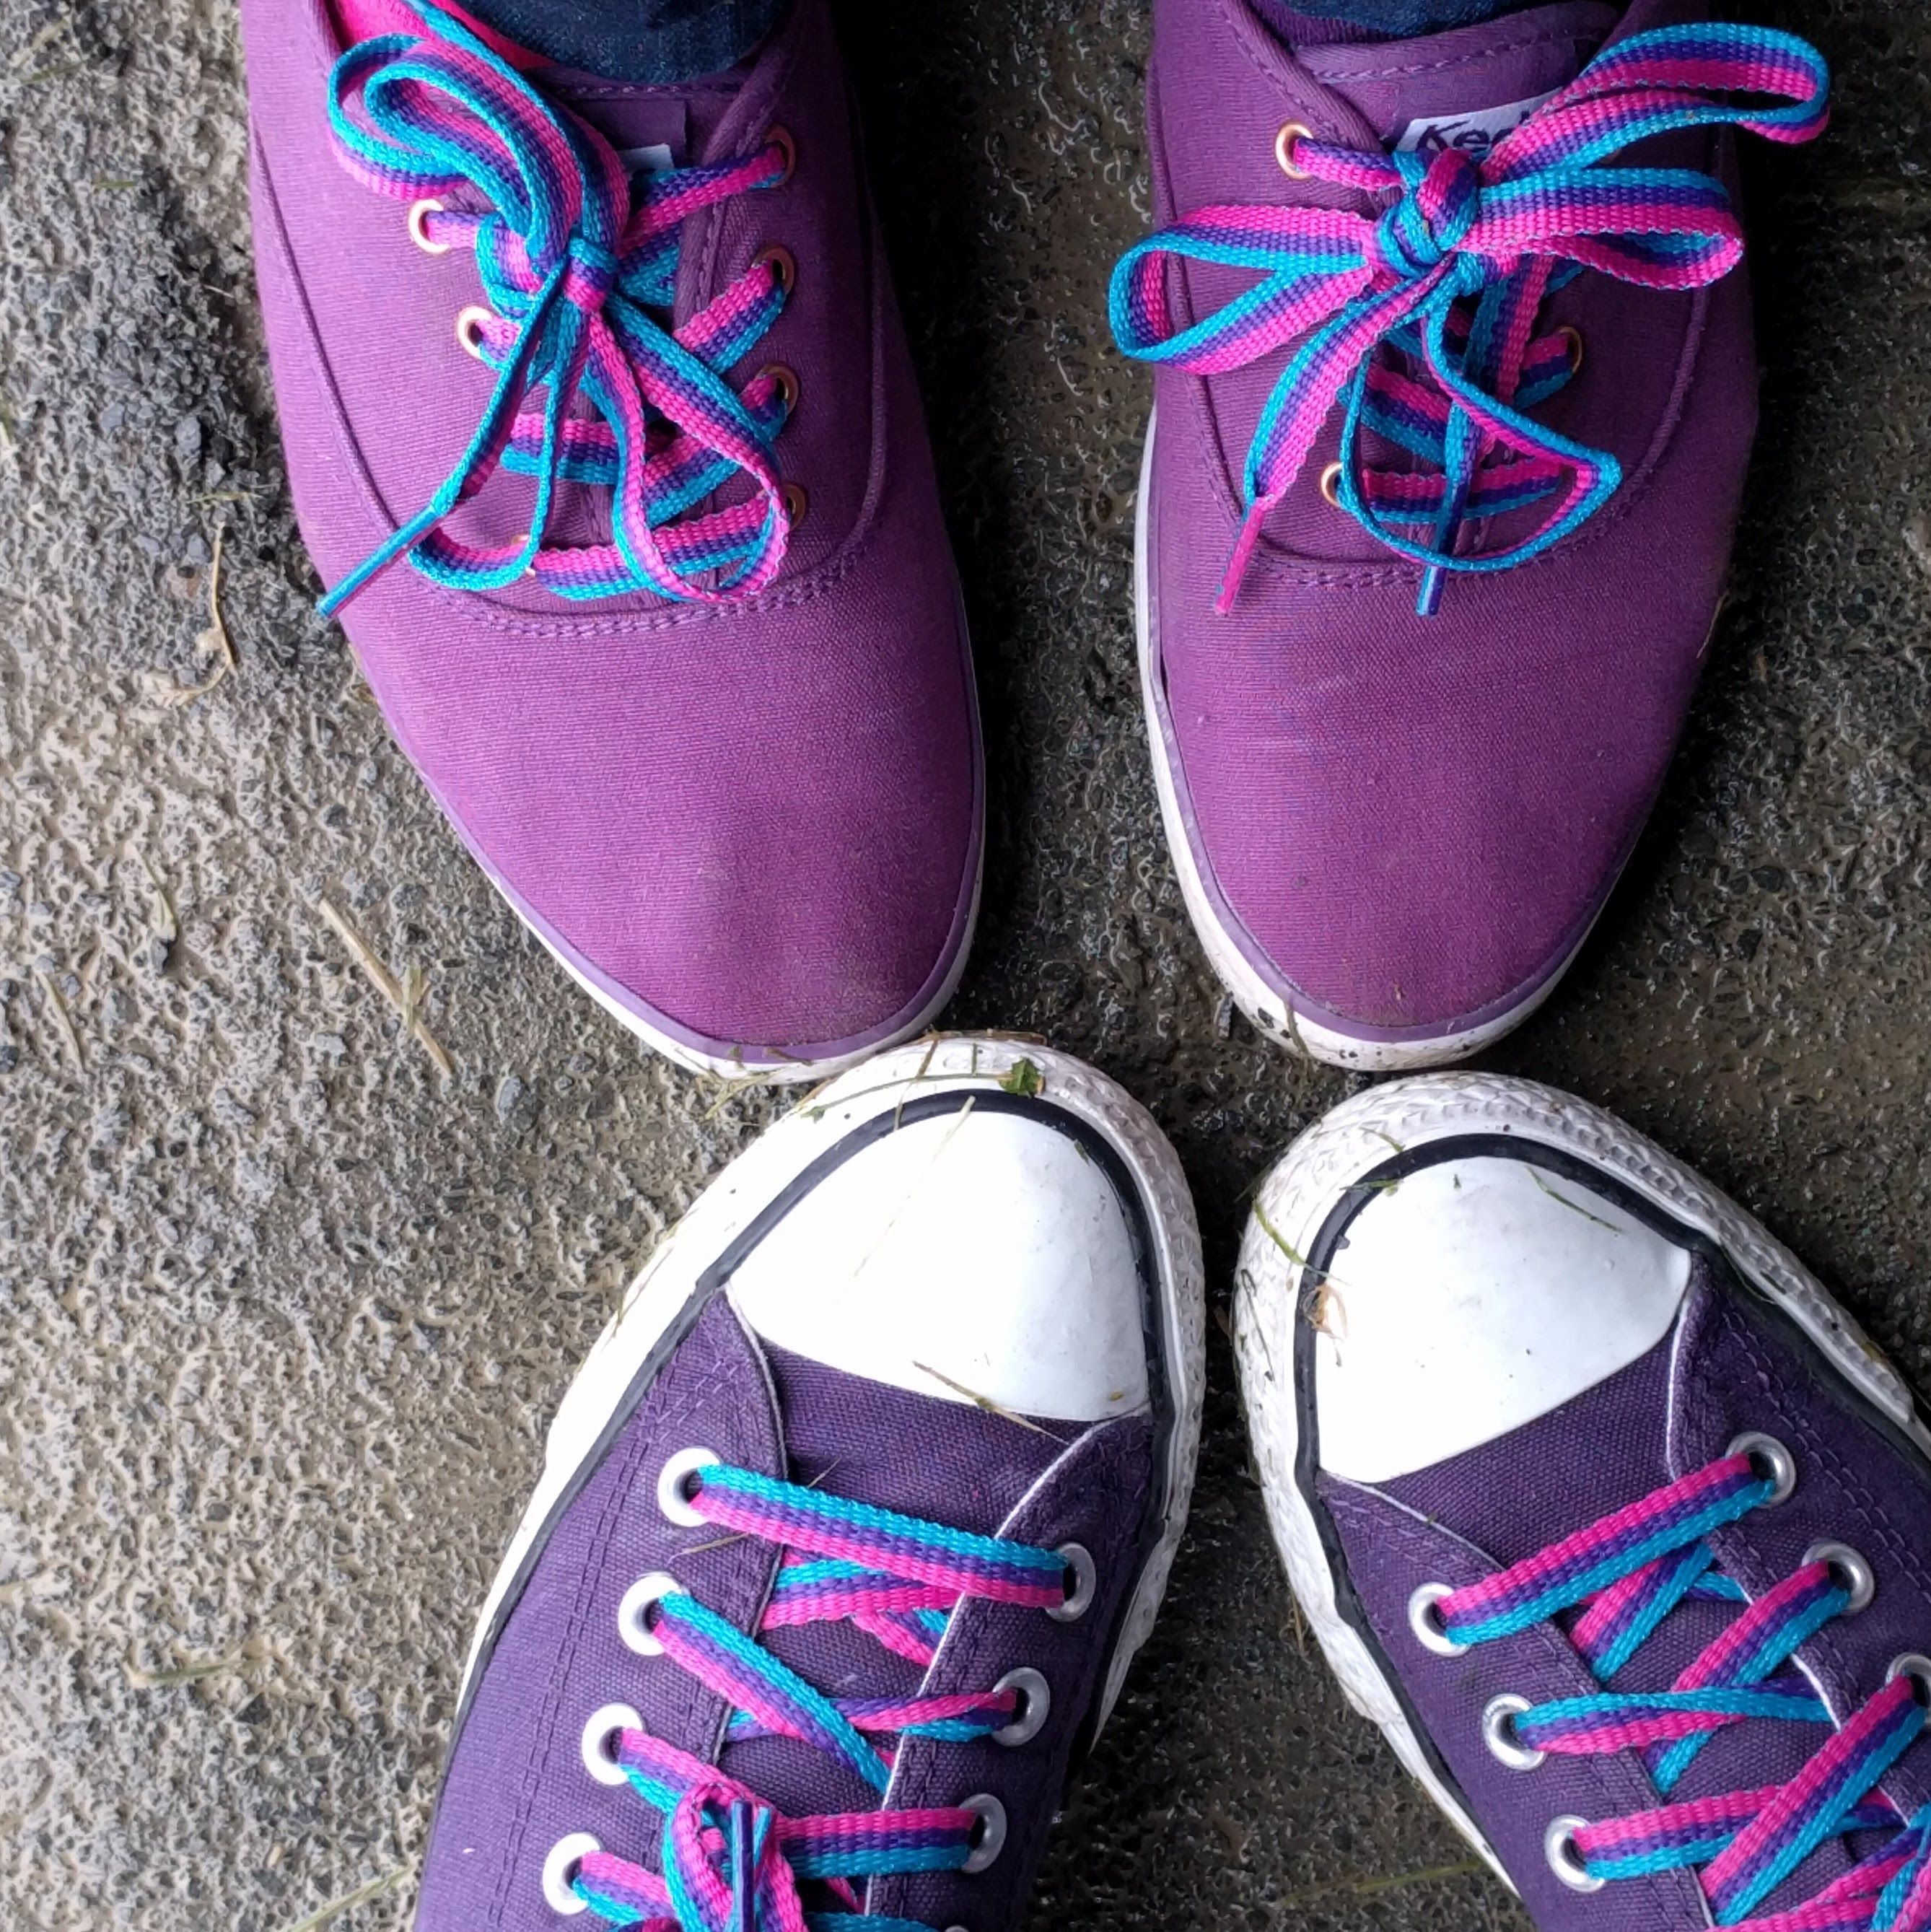 Purple shoes with bi-colored laces